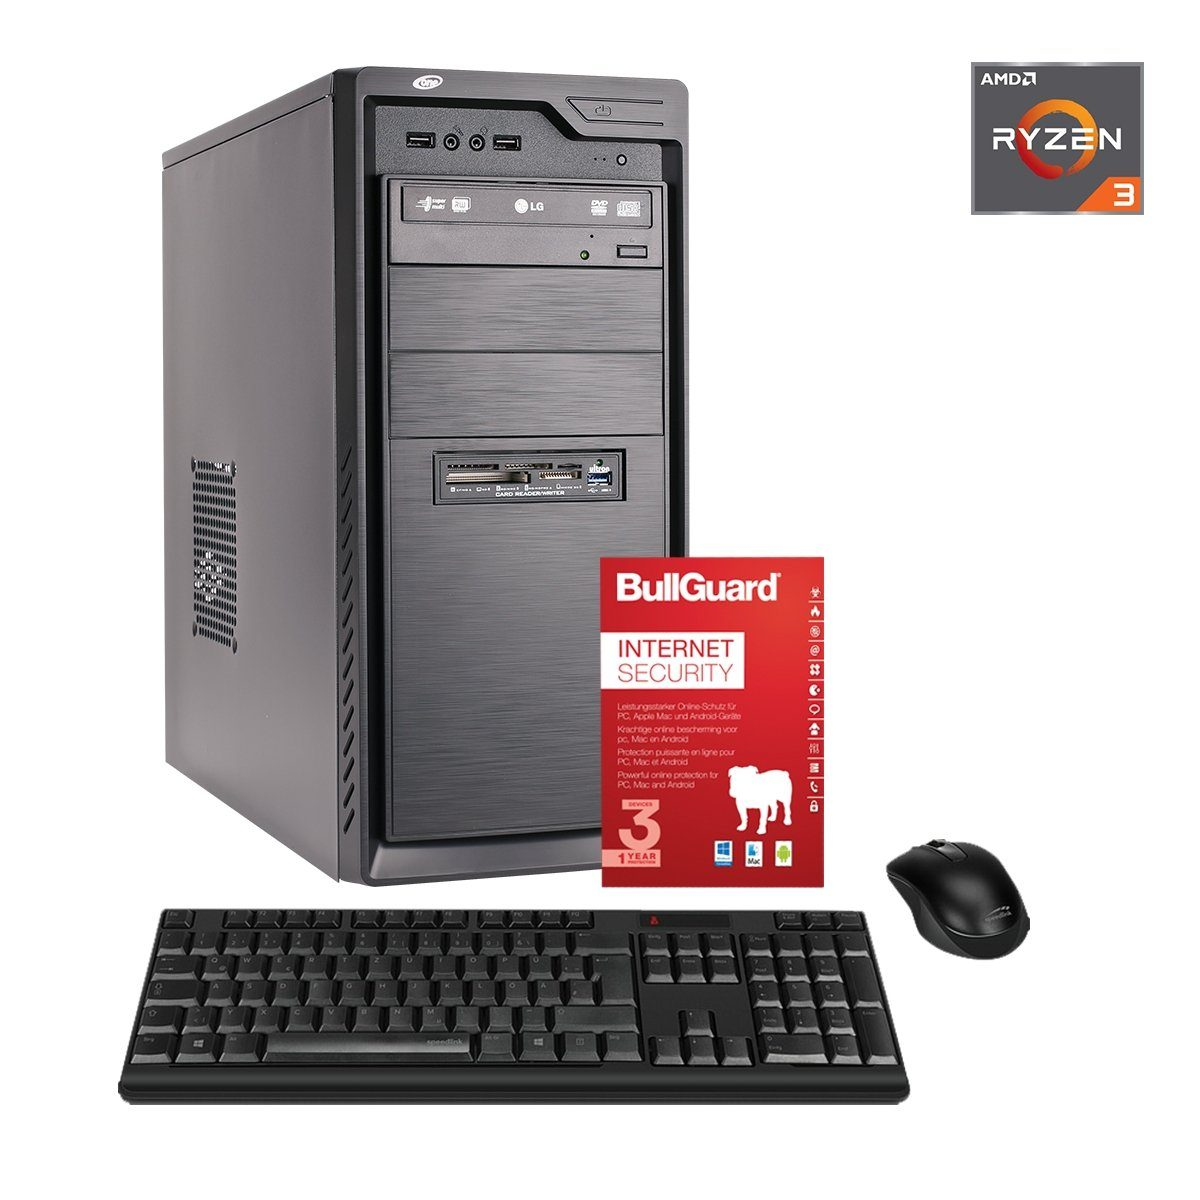 ONE PC, Ryzen 3 2200G, Radeon Vega 8 Graphics, 8GB »Office PC 130570«